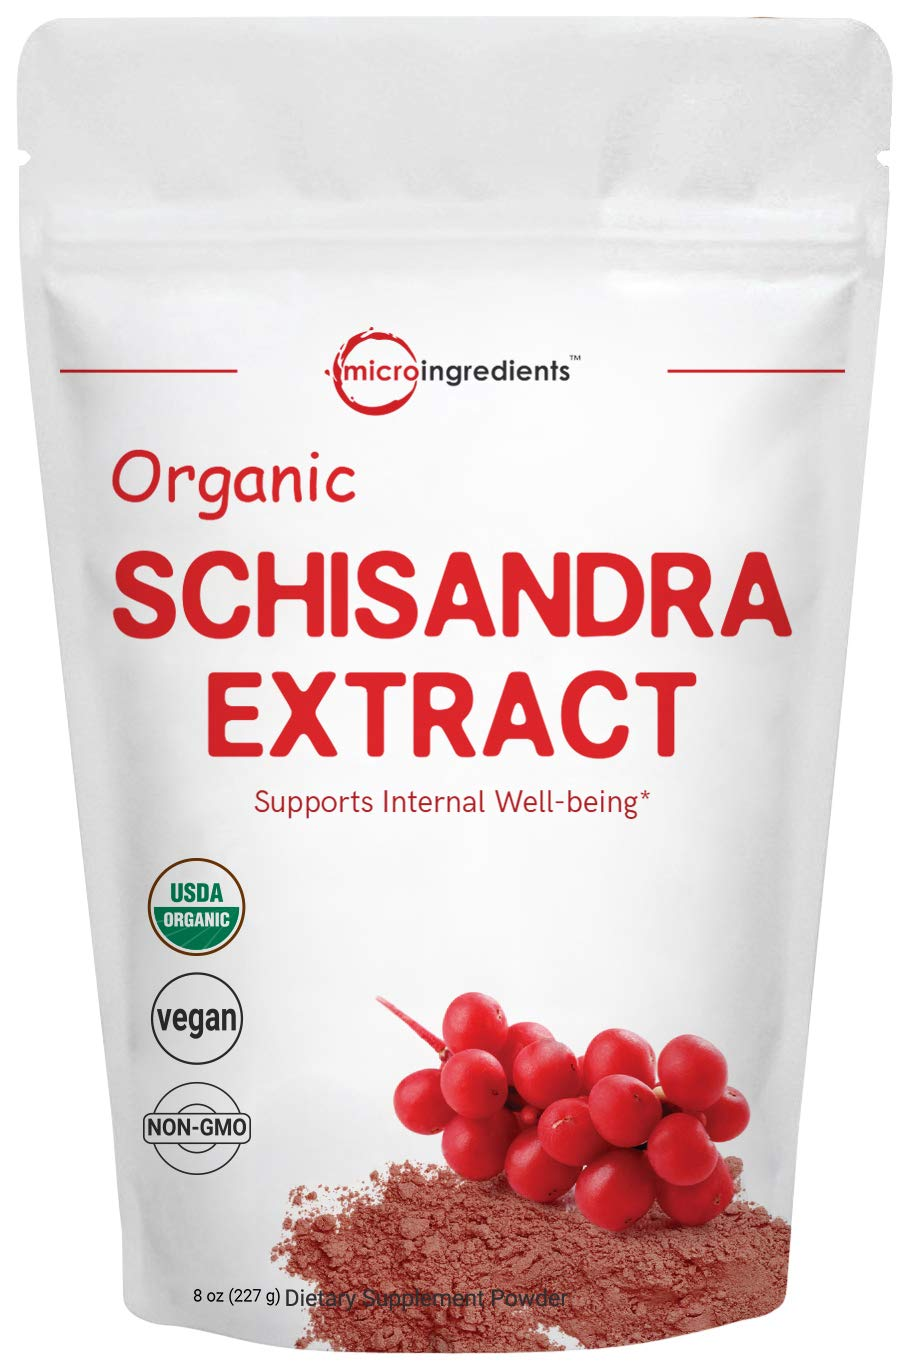 Organic Schisandra Extract Powder, 8 Ounce, Pure Schisandra Supplement, Anti Aging Adaptogenic Herb, Powerfully Supports Liver Detox, Cognitive Health and Stress Relief, No GMOs and Vegan Friendly